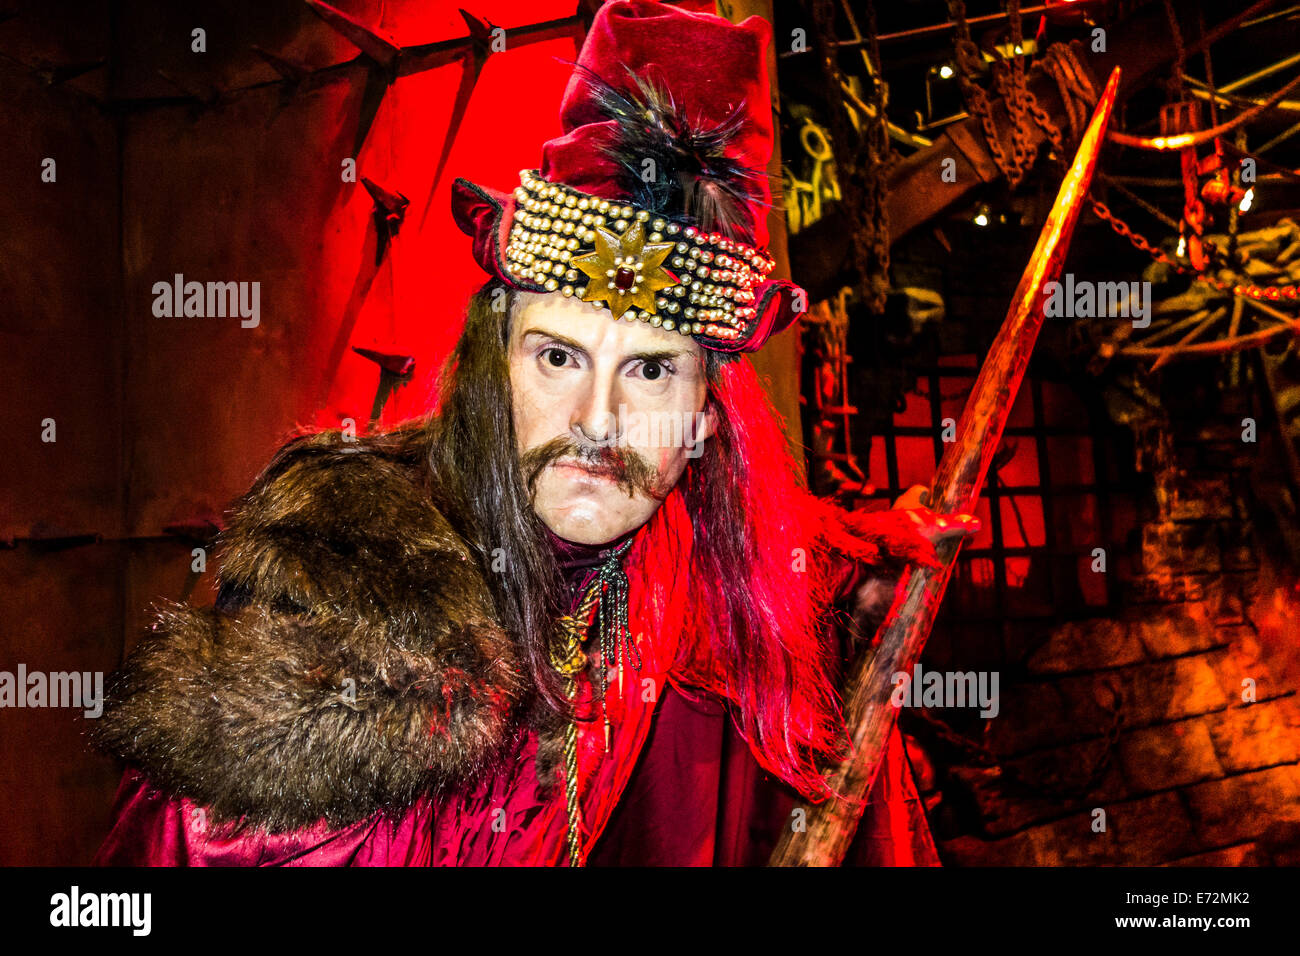 Vlad the Impaler at Madame Tussauds - Stock Image